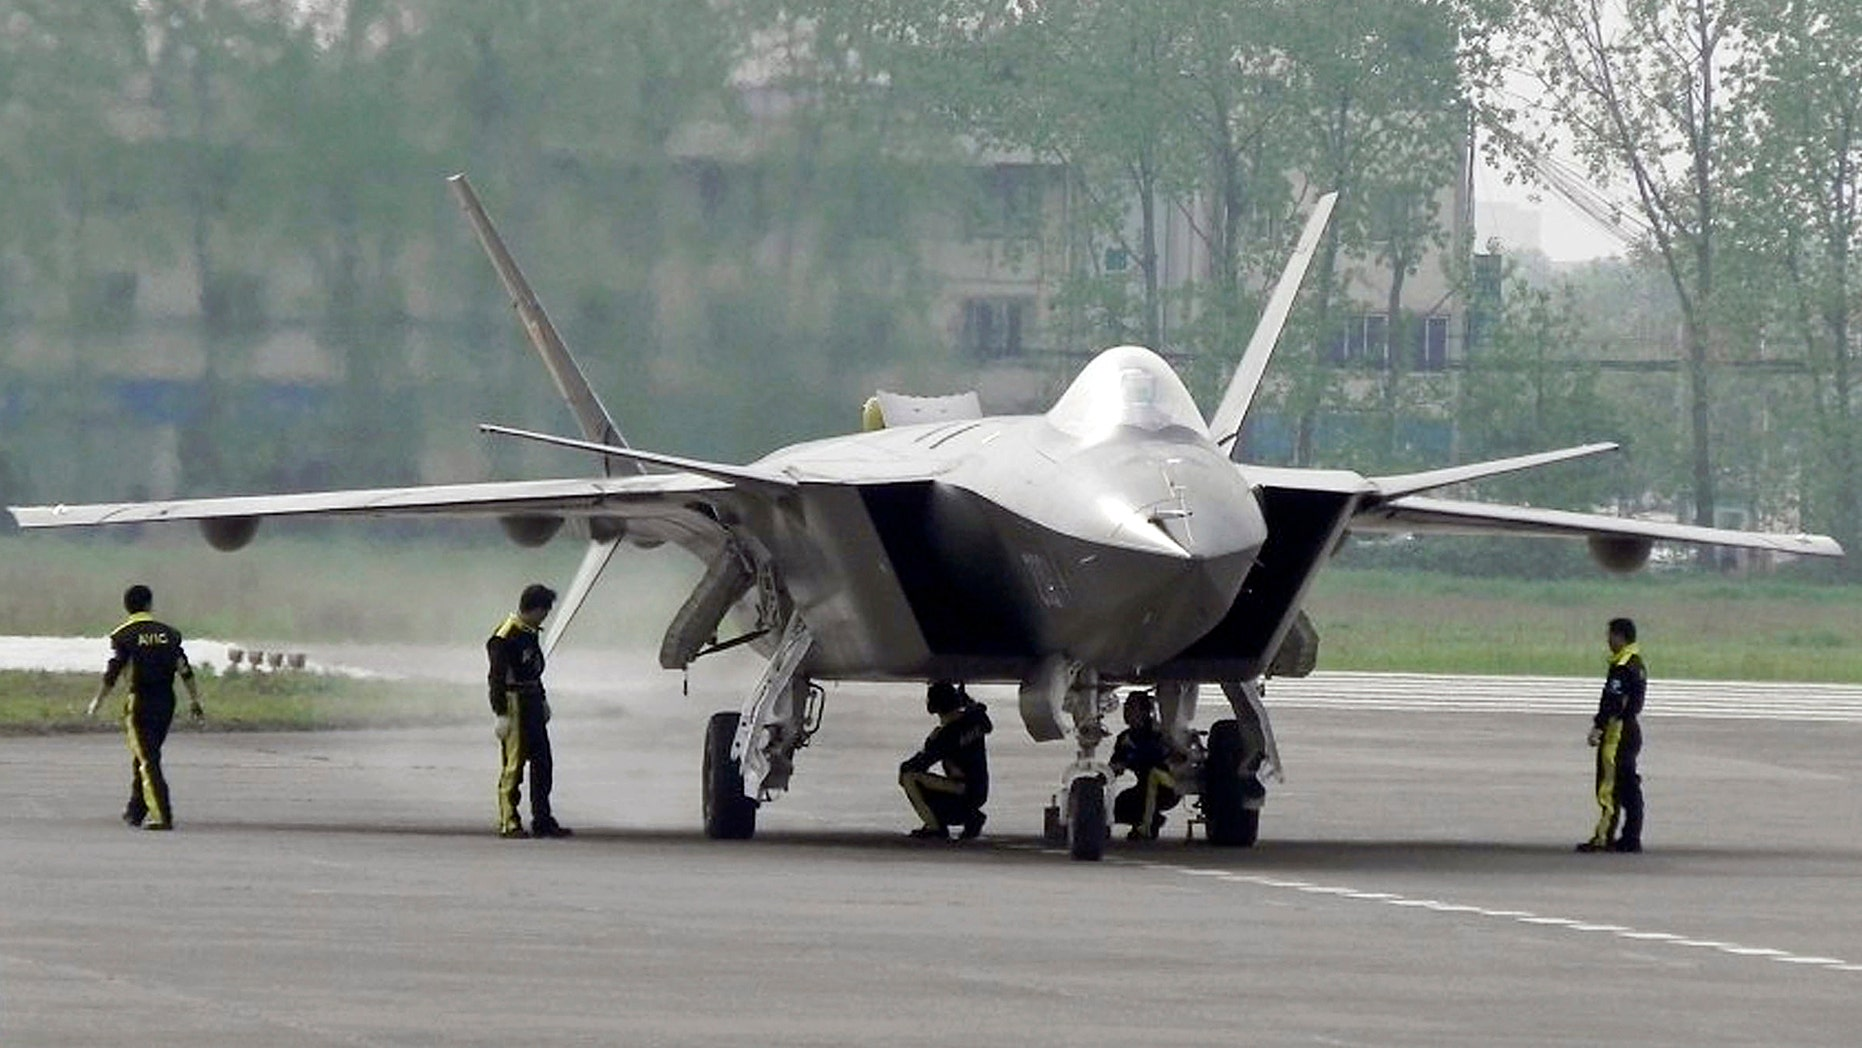 FILE - In this April 17, 2011 file photo, Chinese ground crew members inspect a J-20 stealth fighter in Chengdu, in southwest China's Sichuan province. China's defense budget will rise 8 percent to 1.1 trillion yuan ($173 billion) this year as the country is preparing to launch its second aircraft carrier, integrating stealth fighters into its air force and fielding an array of advanced missiles able to attack air and sea targets at vast distances, according to a report released Monday, March 5, 2018. (Color China Photo via AP, File)